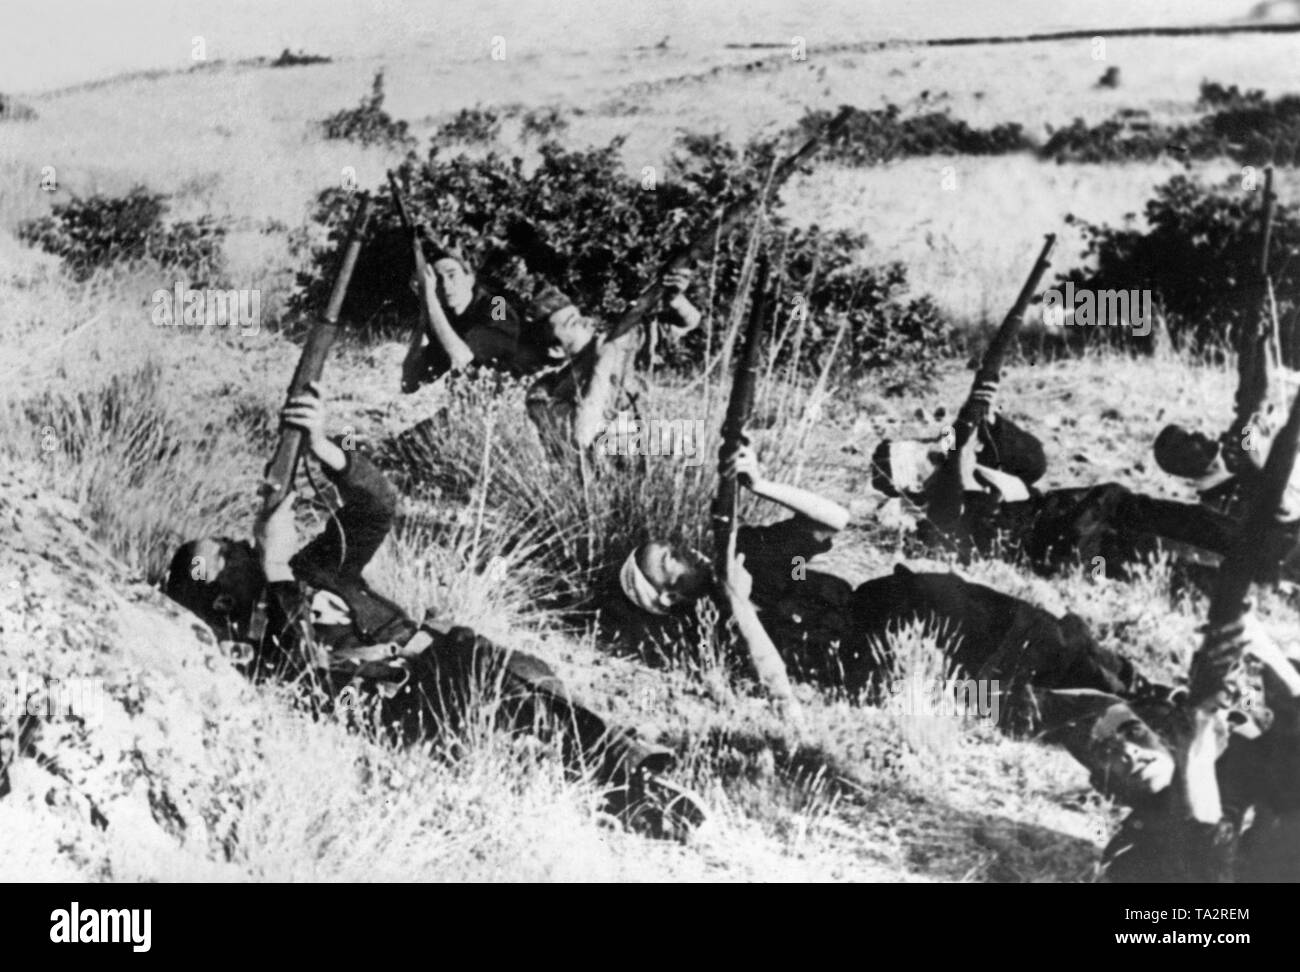 Photo of Republican fighters, who are trying to shoot at Spanish national warplanes with shotguns while lying on the ground at the Andalusian Front. - Stock Image